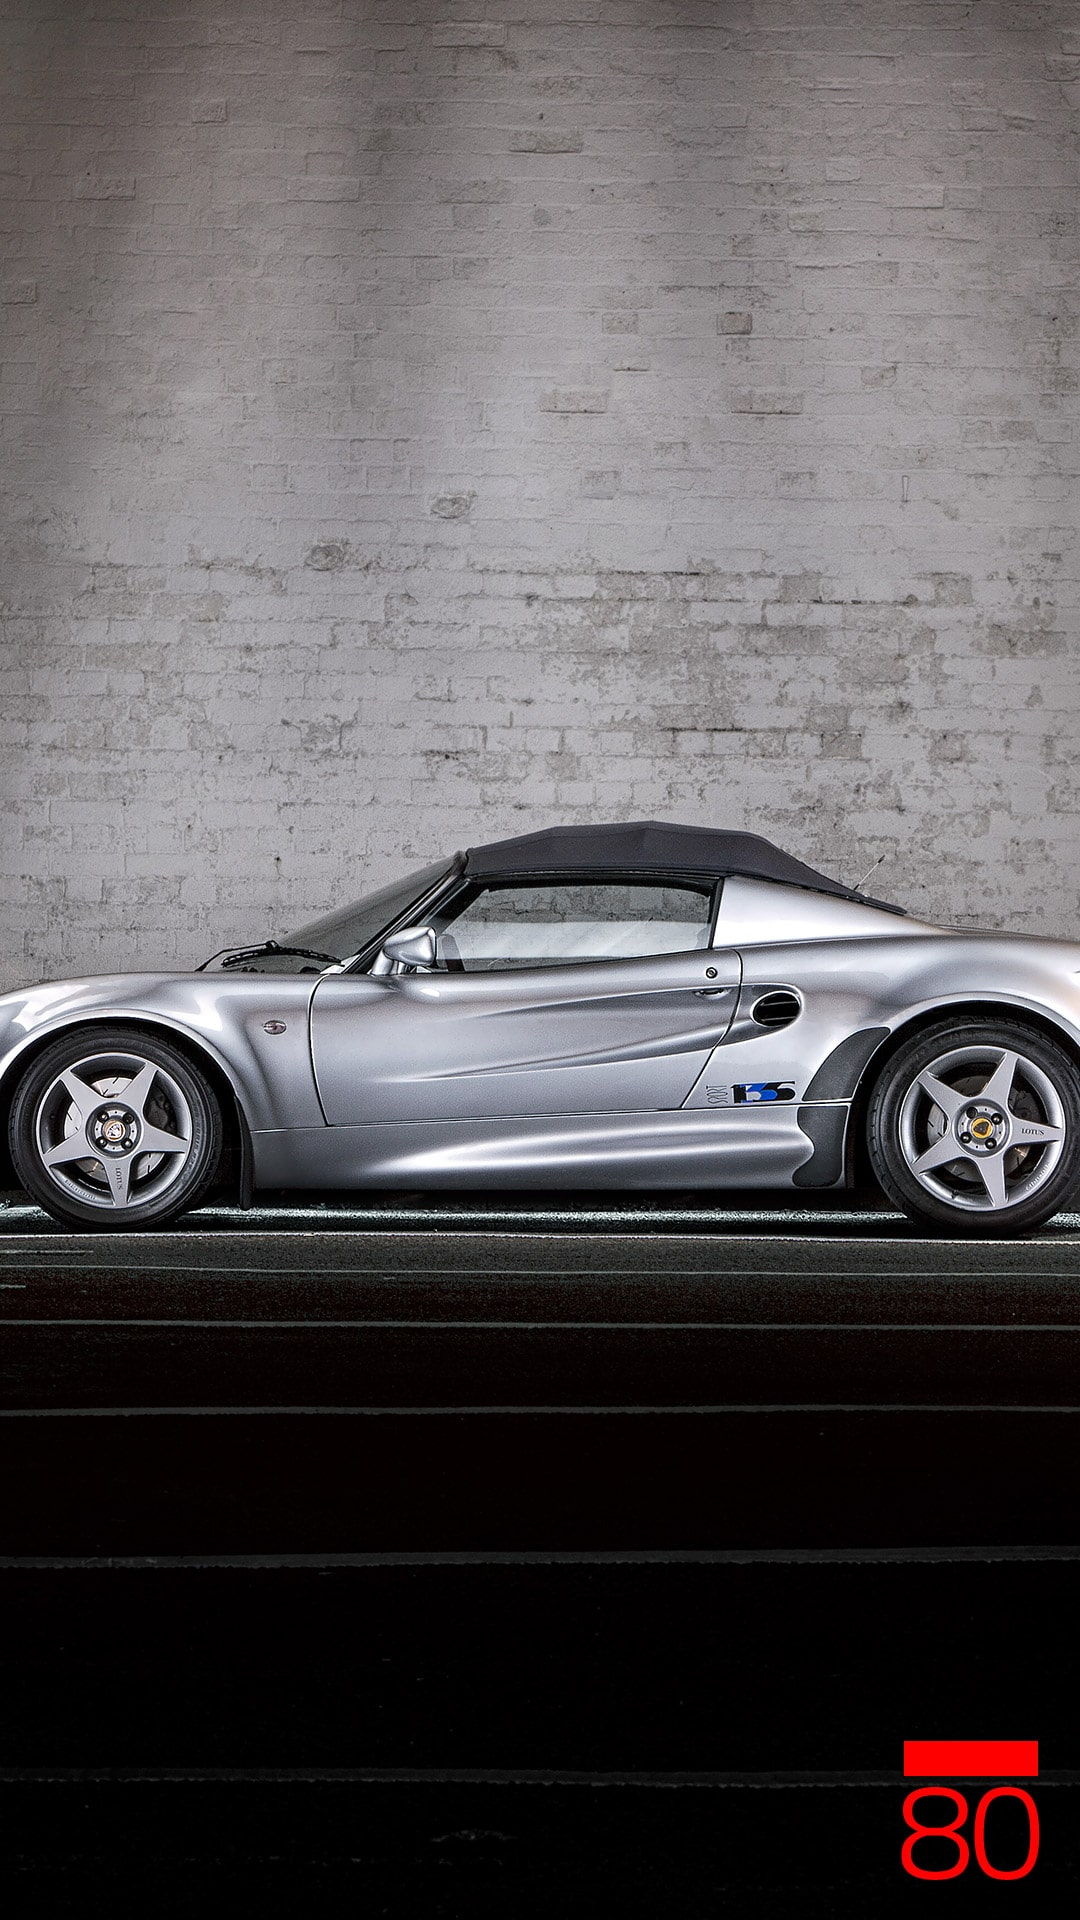 Lotus Elise 135S smartphone wallpaper